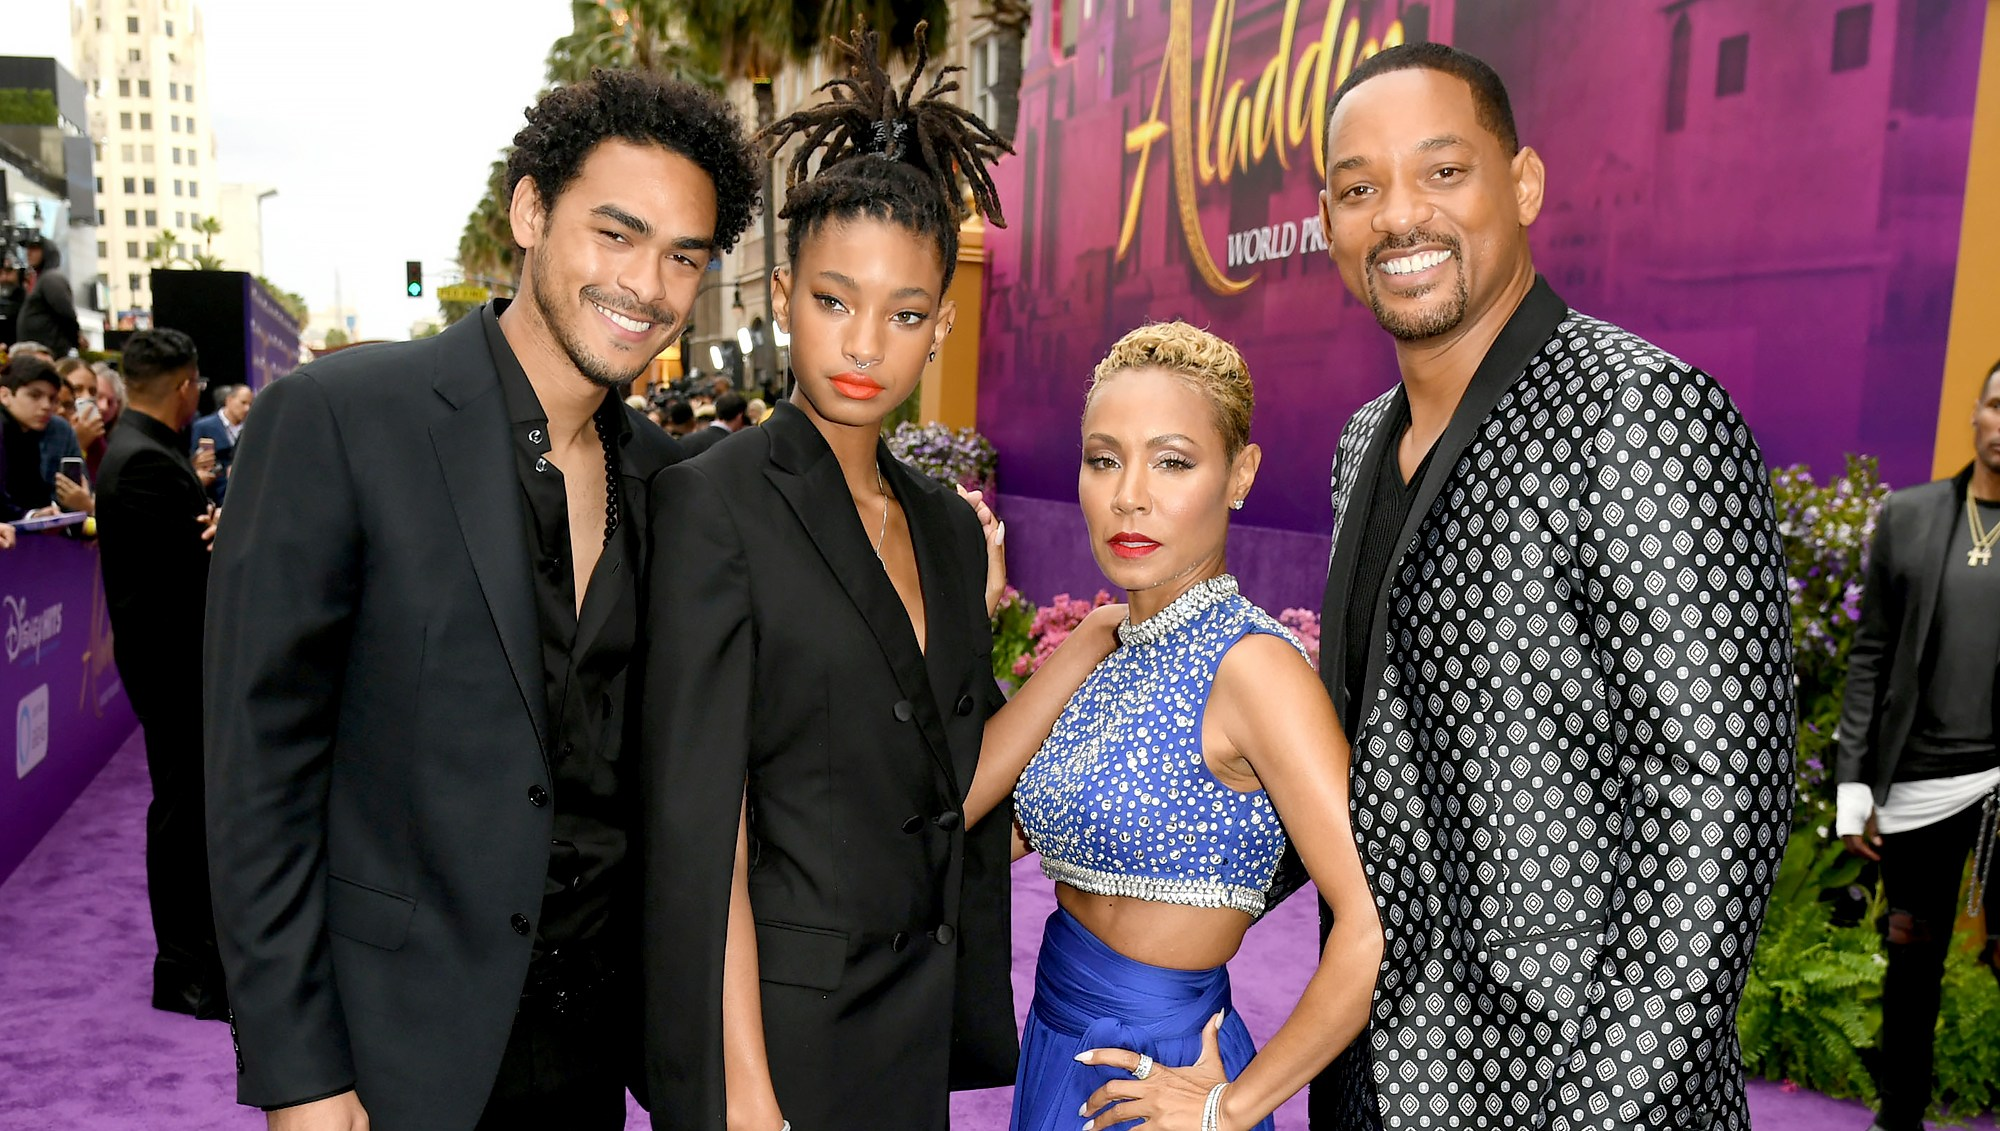 Trey-Smith,-Jada-Pinkett-Smith,-Willow-Smith-and-Will-Smith-Aladdin-premiere-2